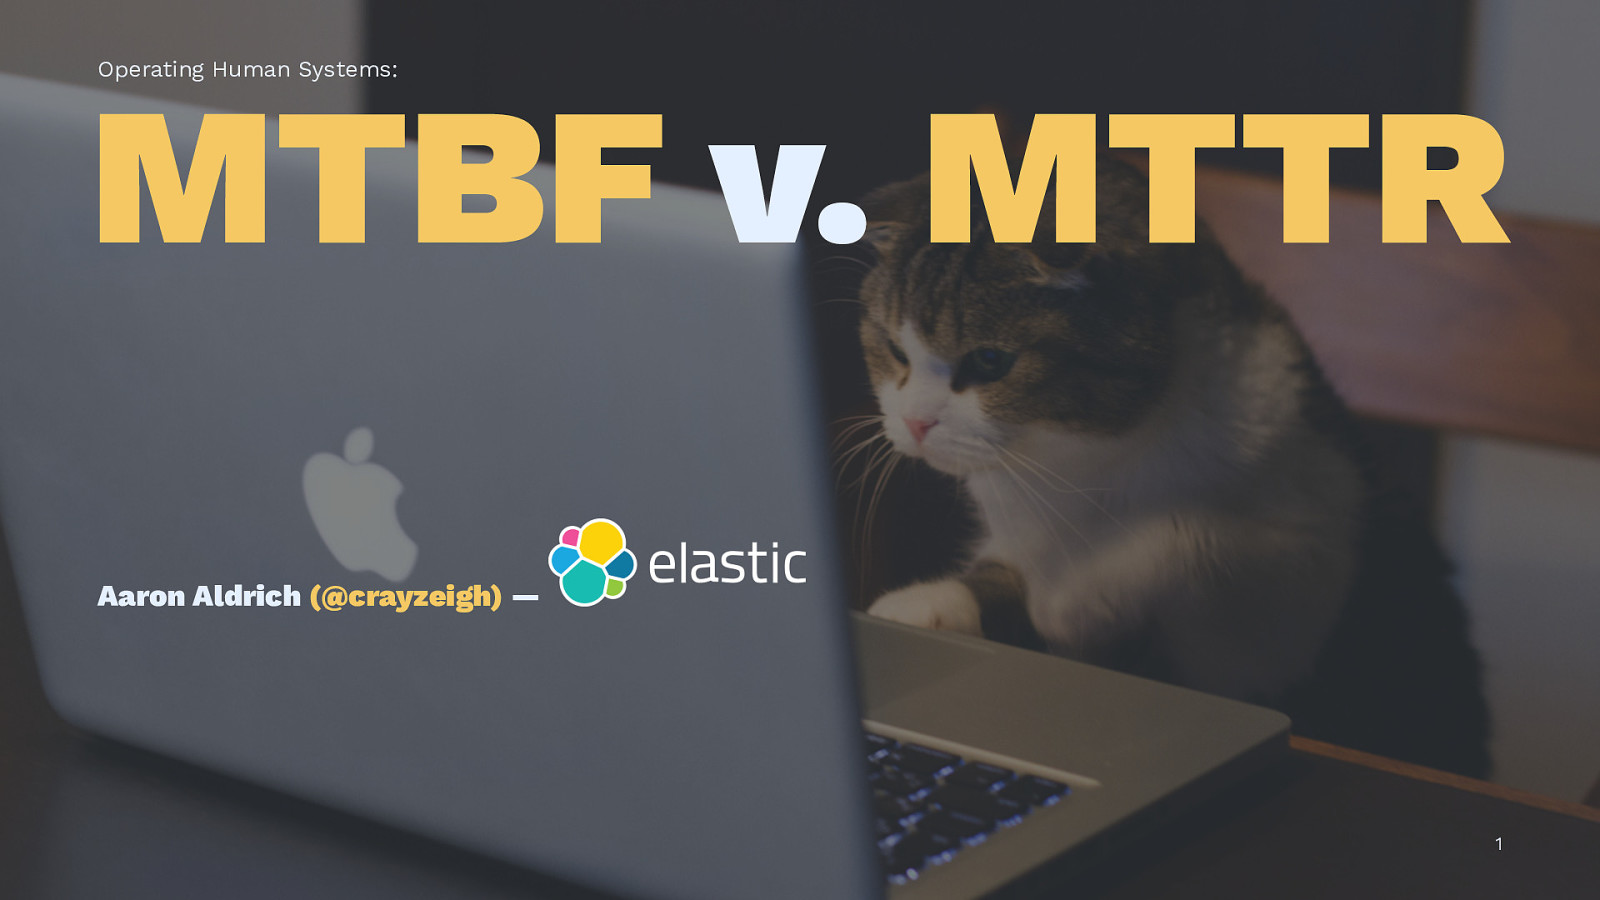 [Ignite] Operating Human Systems: MTBF v. MTTR